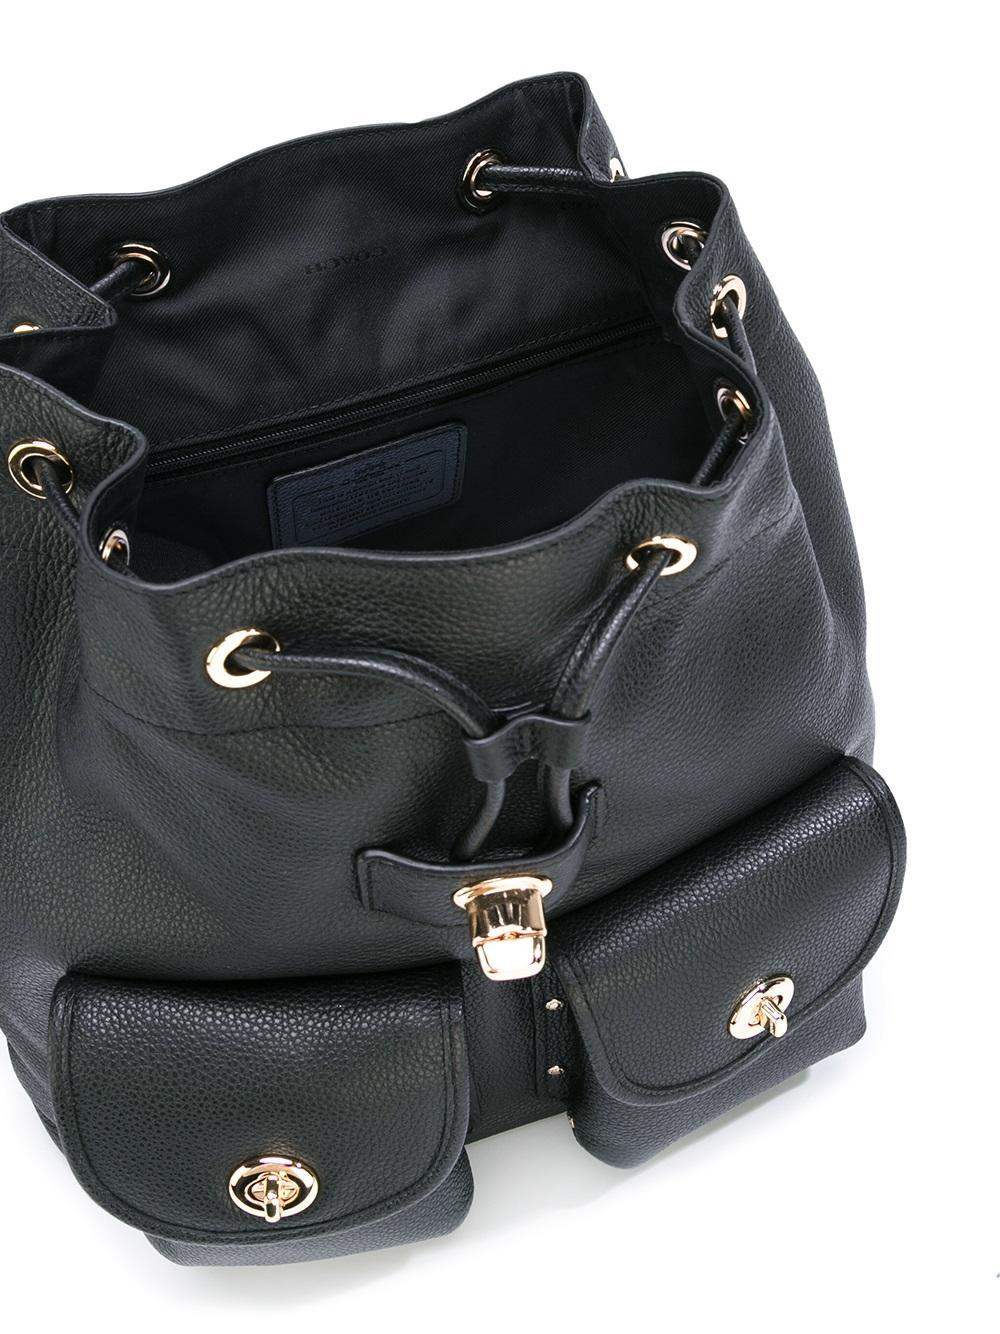 COACH Patch Pocket Backpack in Black - Lyst